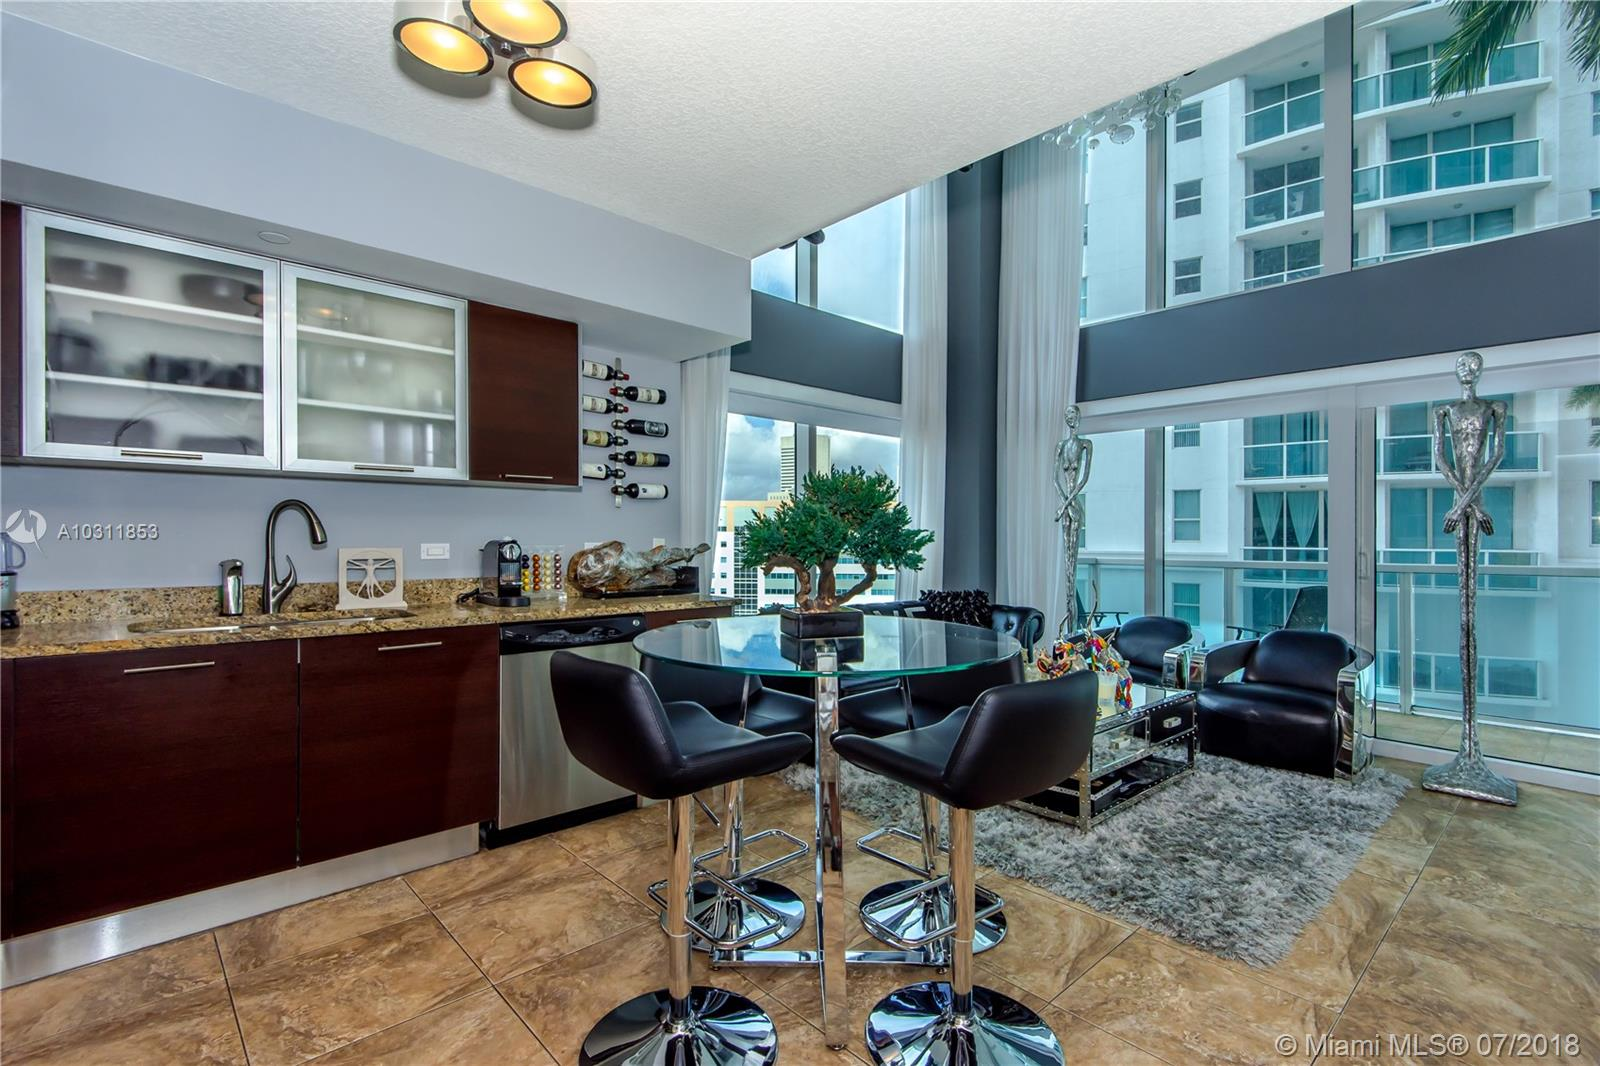 41 SE 5th Street, Miami, FL 33131-2504, Brickell on the River South #717, Brickell, Miami A10311853 image #10